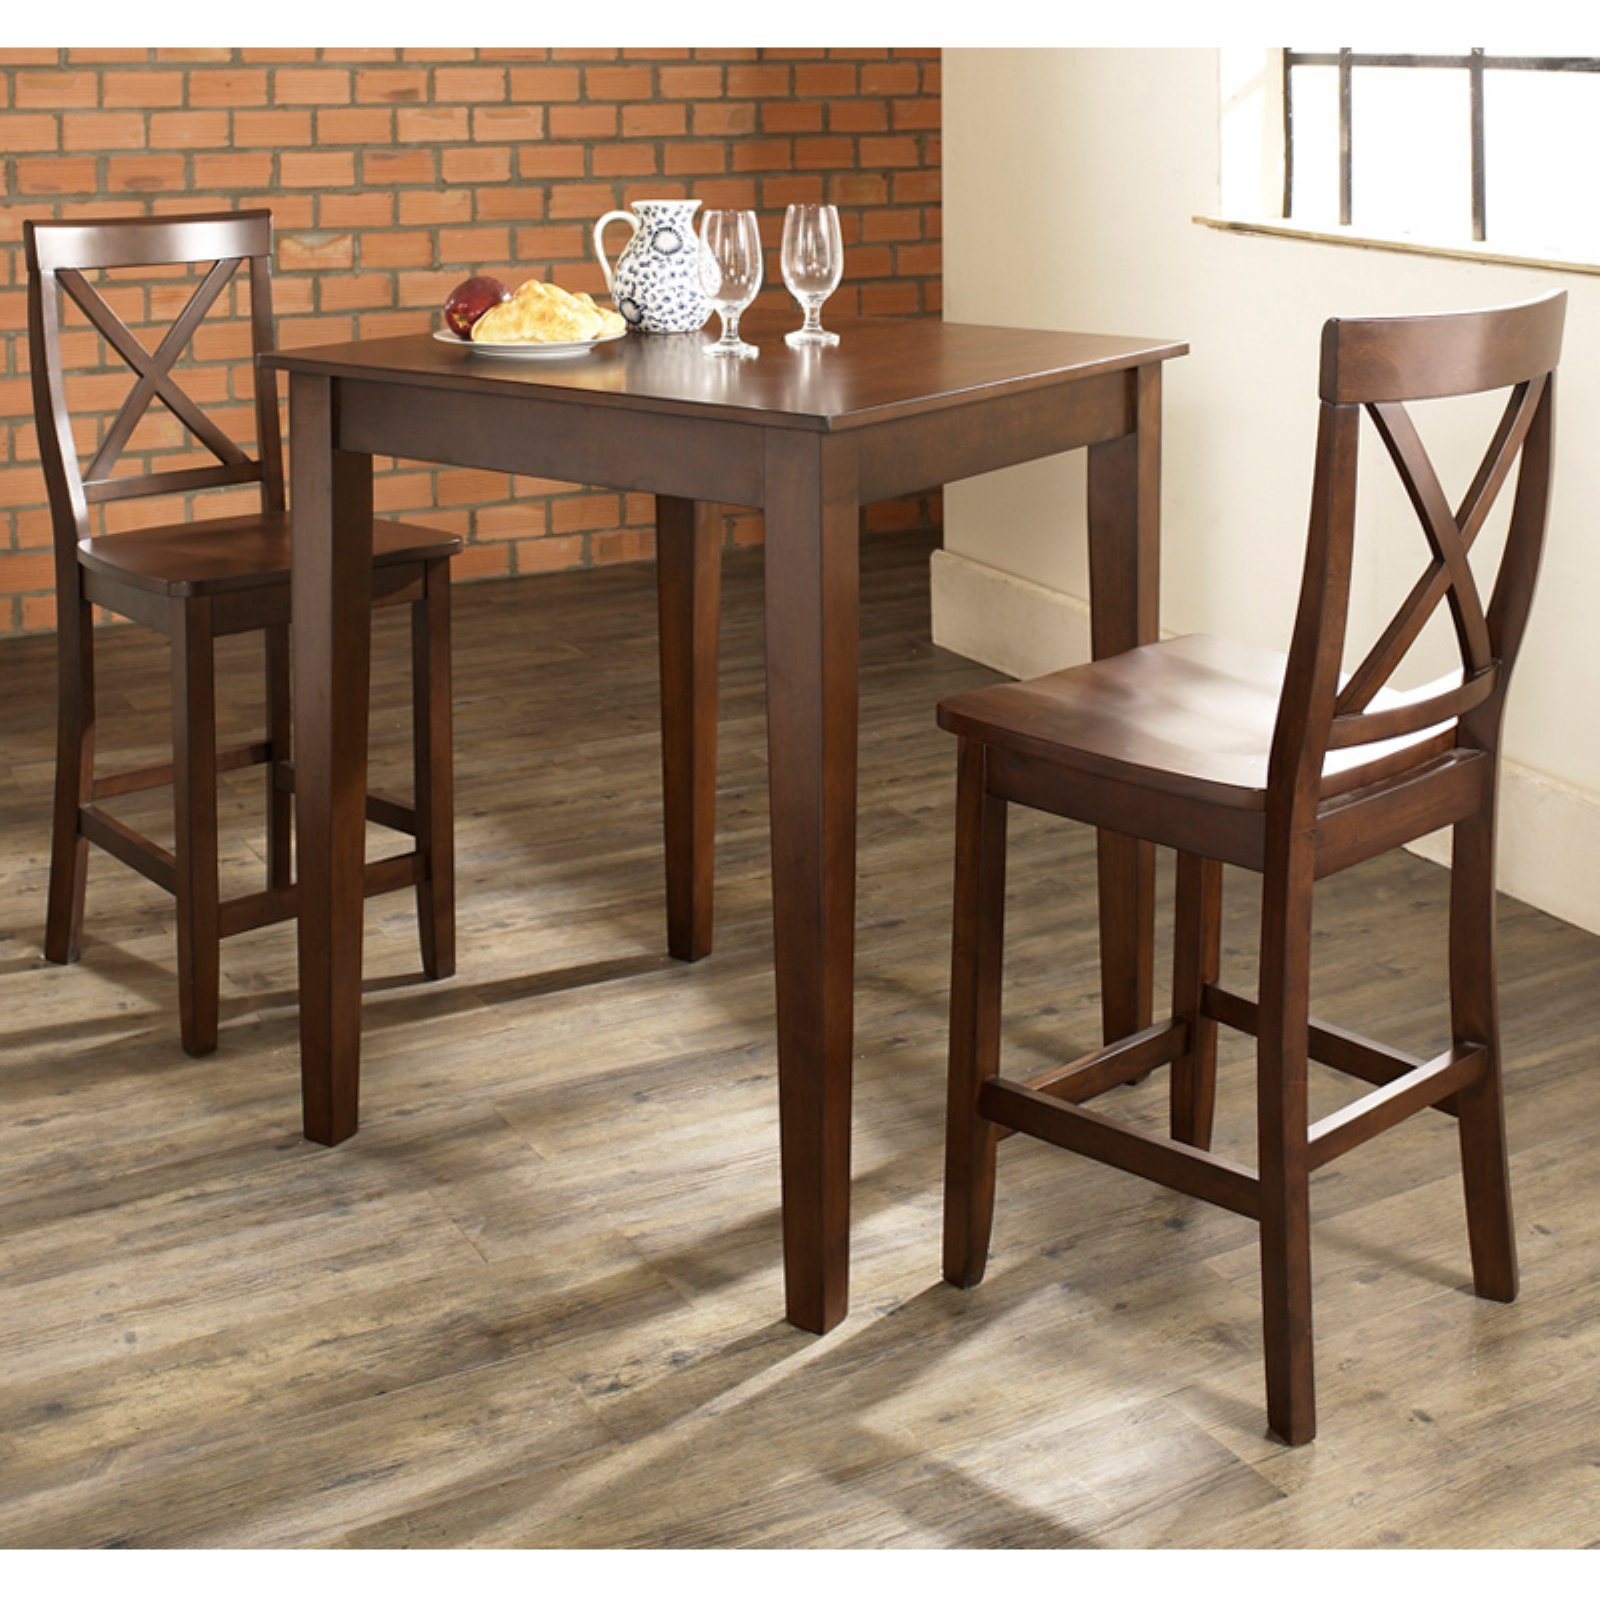 Crosley Furniture 3-Piece Pub Dining Set with Tapered Leg and X-Back Stools